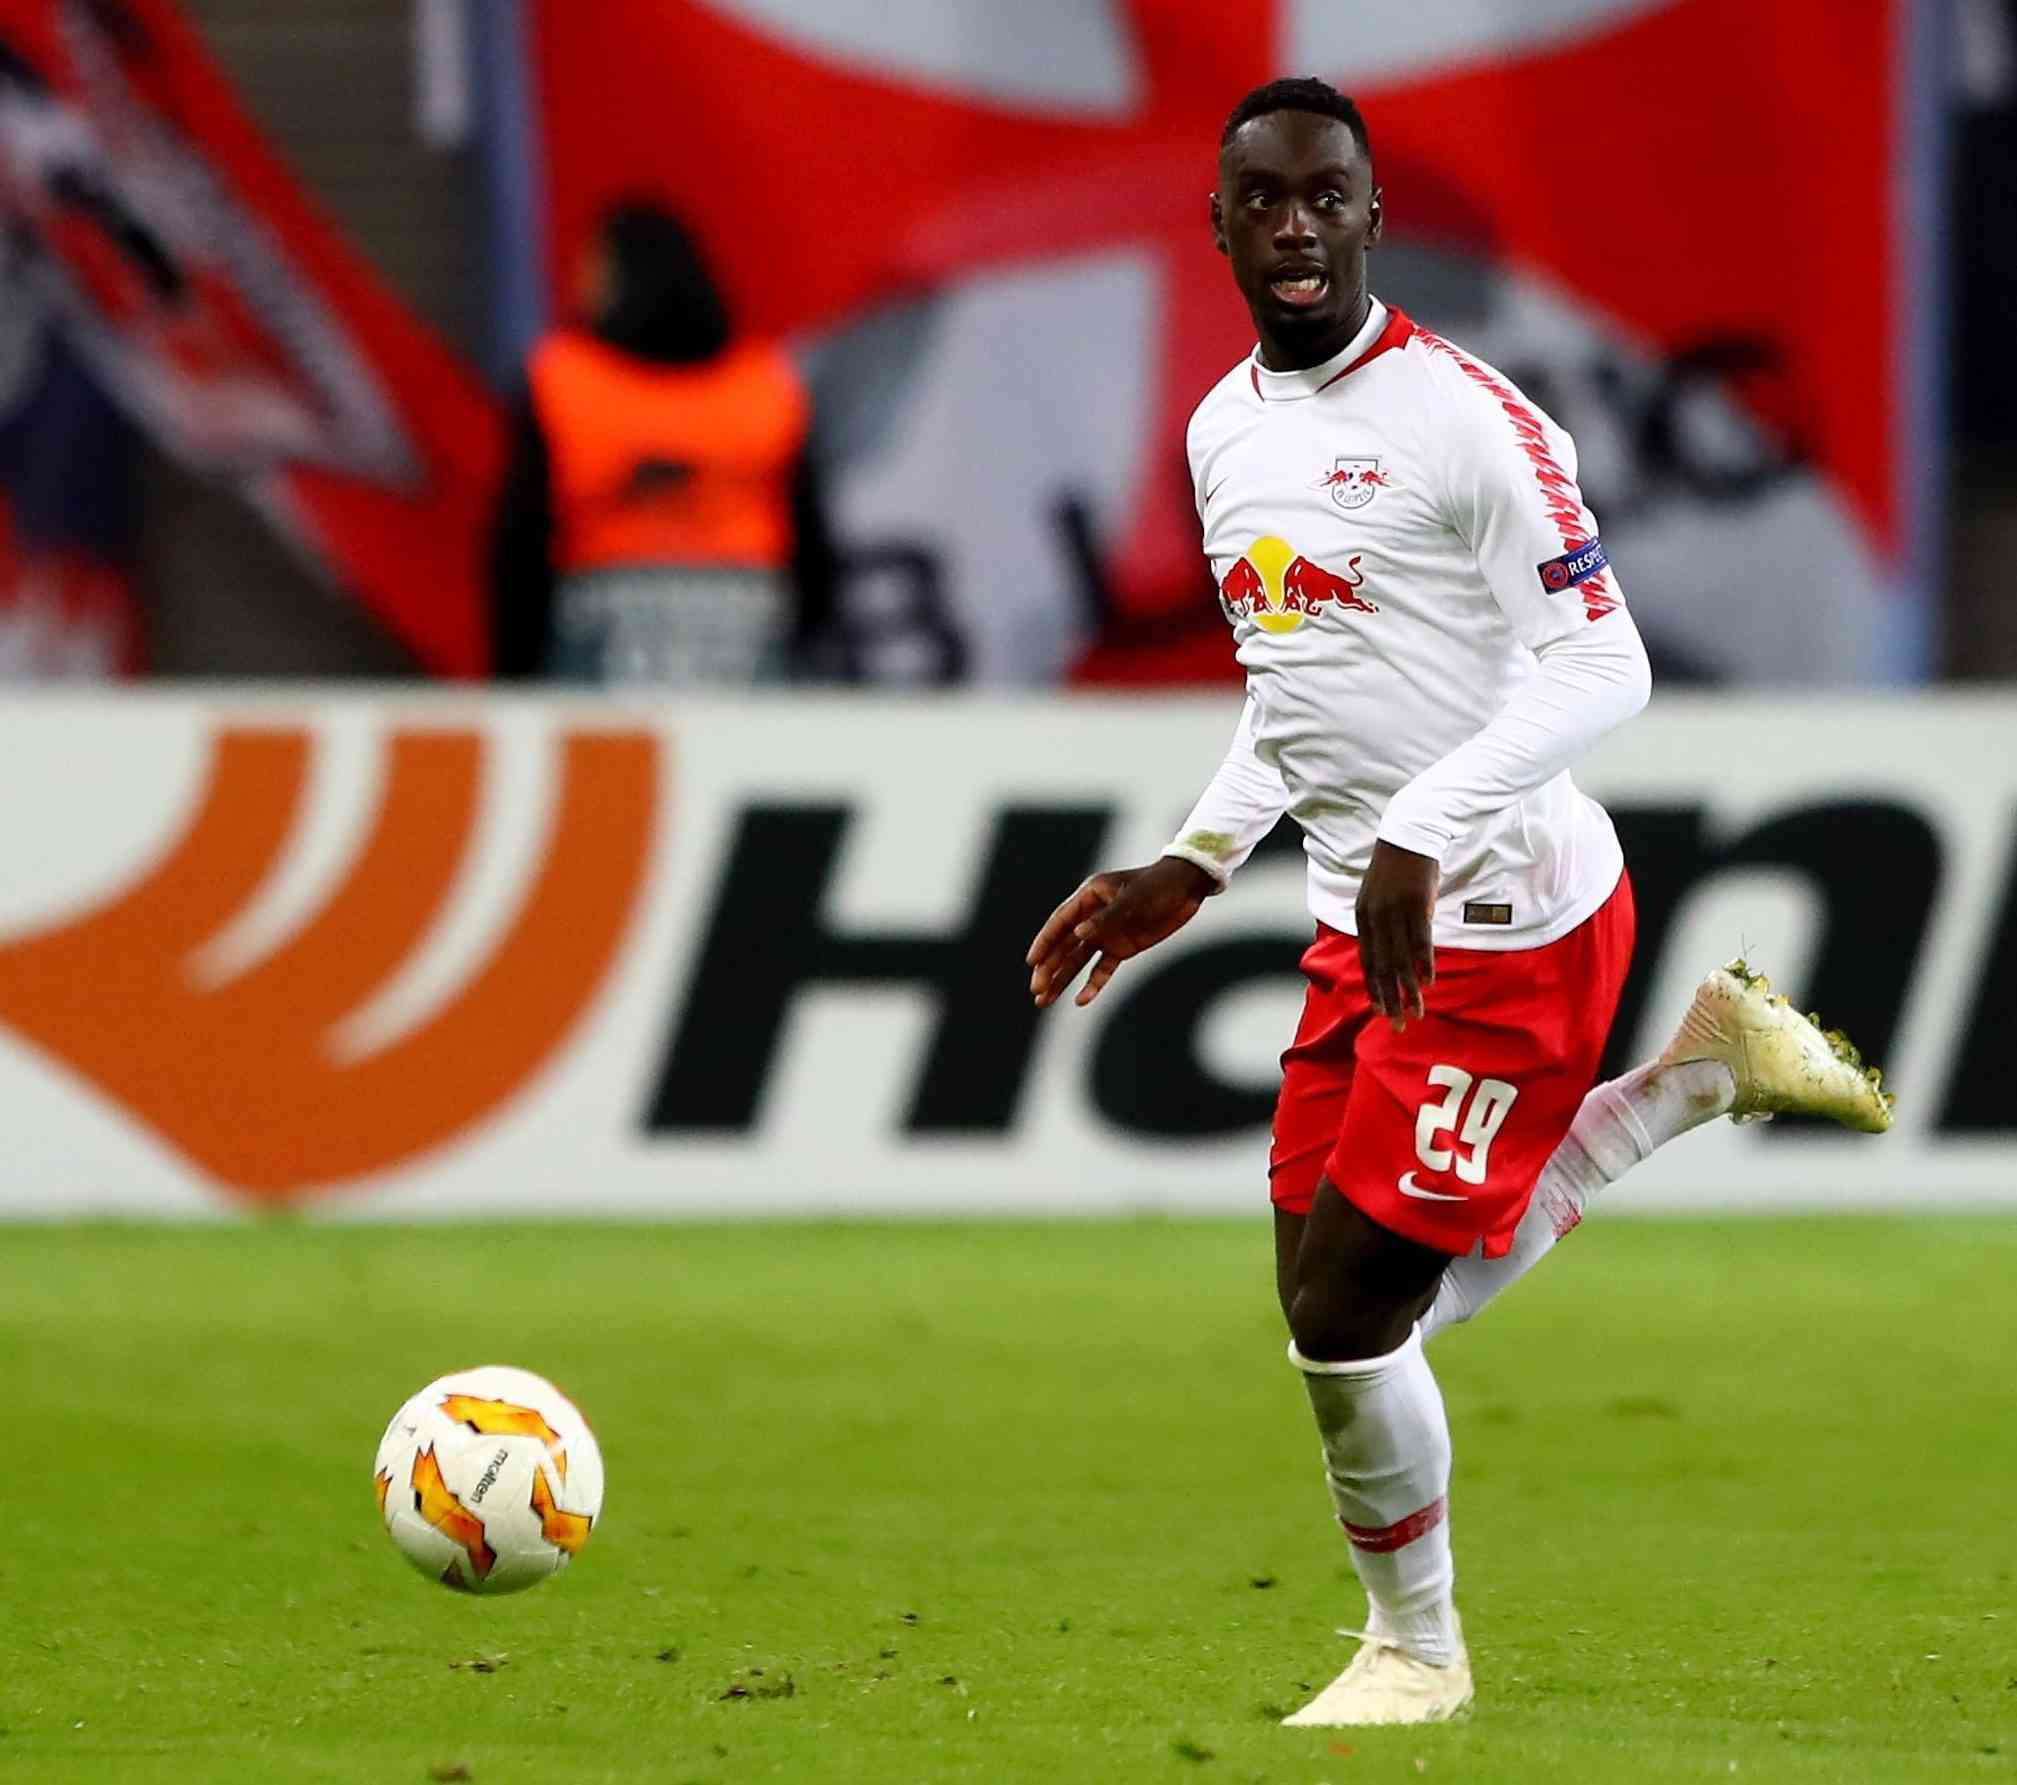 648d5447be1c Scooper - Football News  LEIP OF FAITH Everton facing fight with Wolves and  Southampton for Leipzig ace Augustin